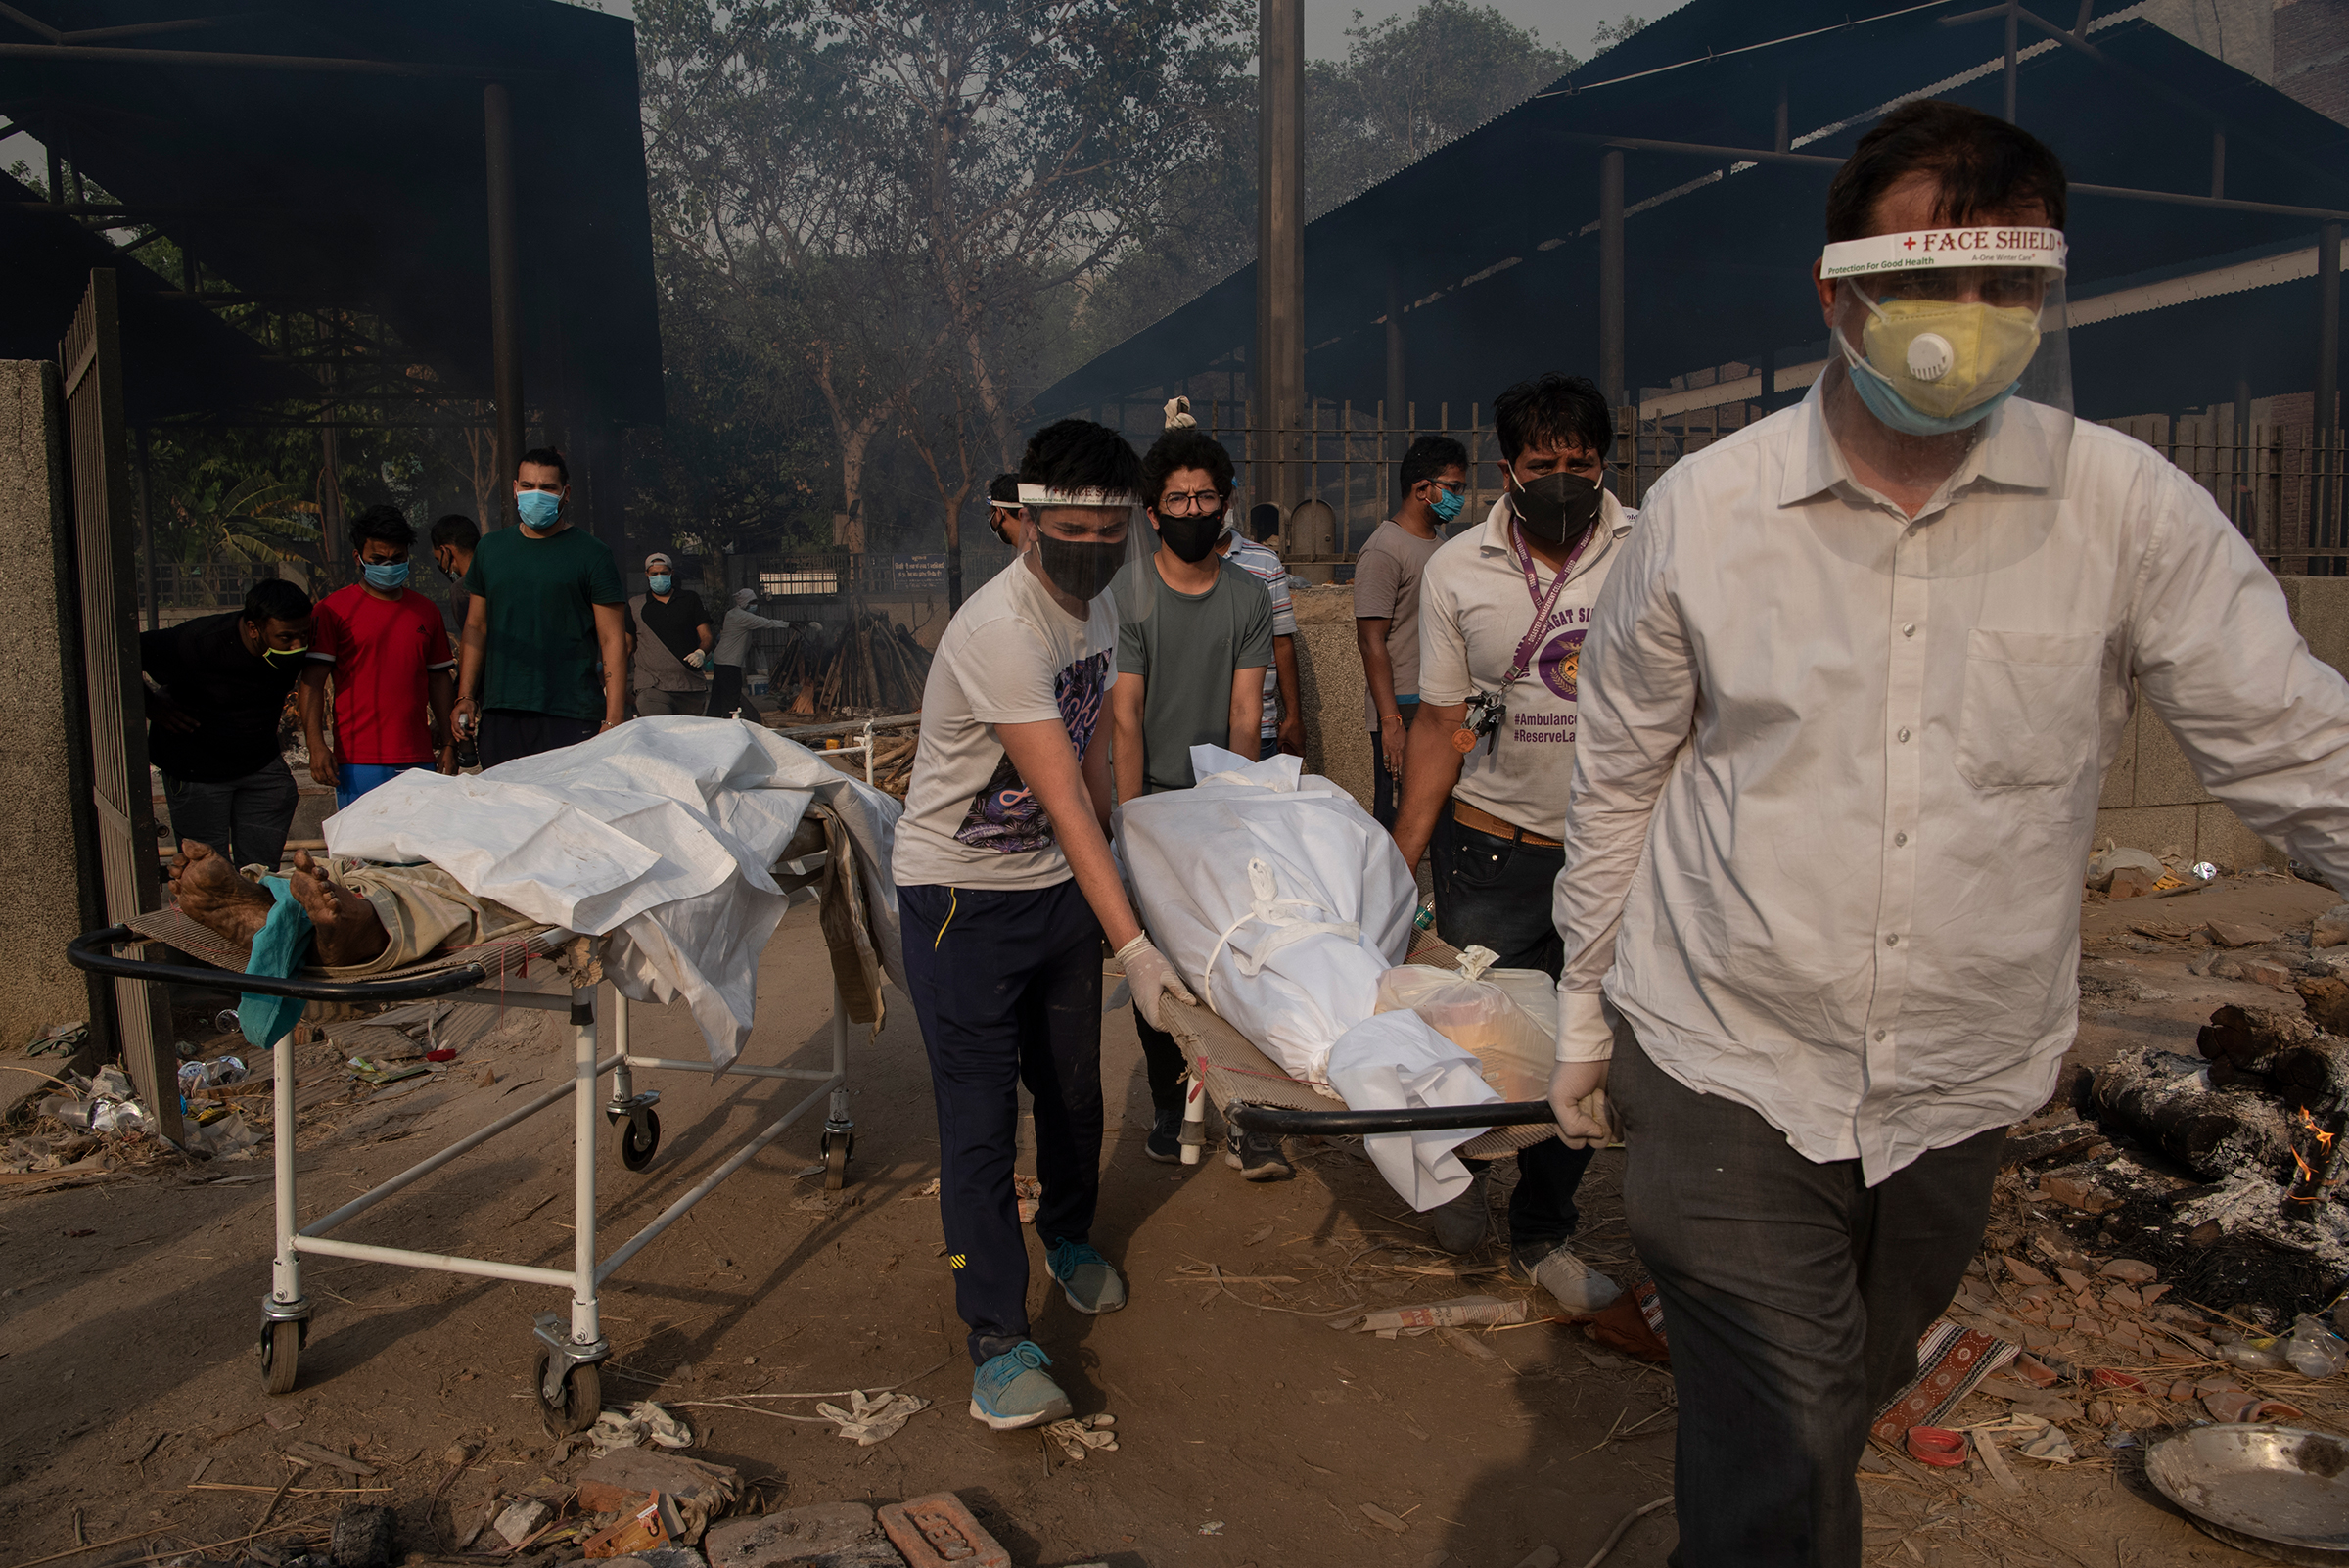 Relatives carry the body of a loved one at a crematorium in New Delhi on April 27, as India endures the world's worst COVID-19 outbreak.